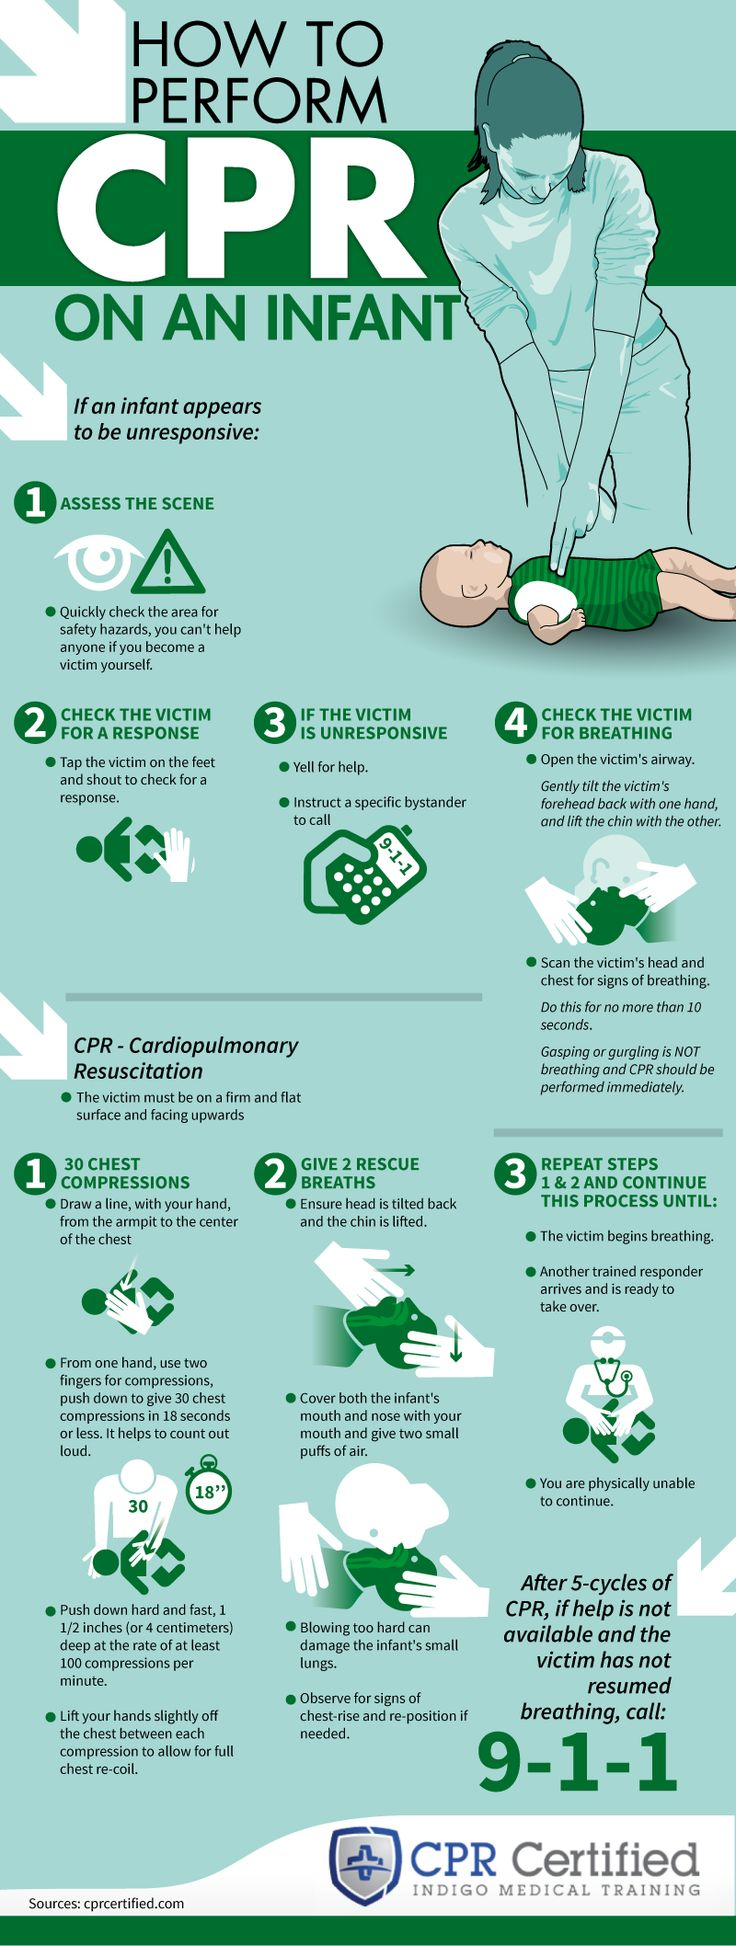 How to Perform CPR on an Infant – Infographic